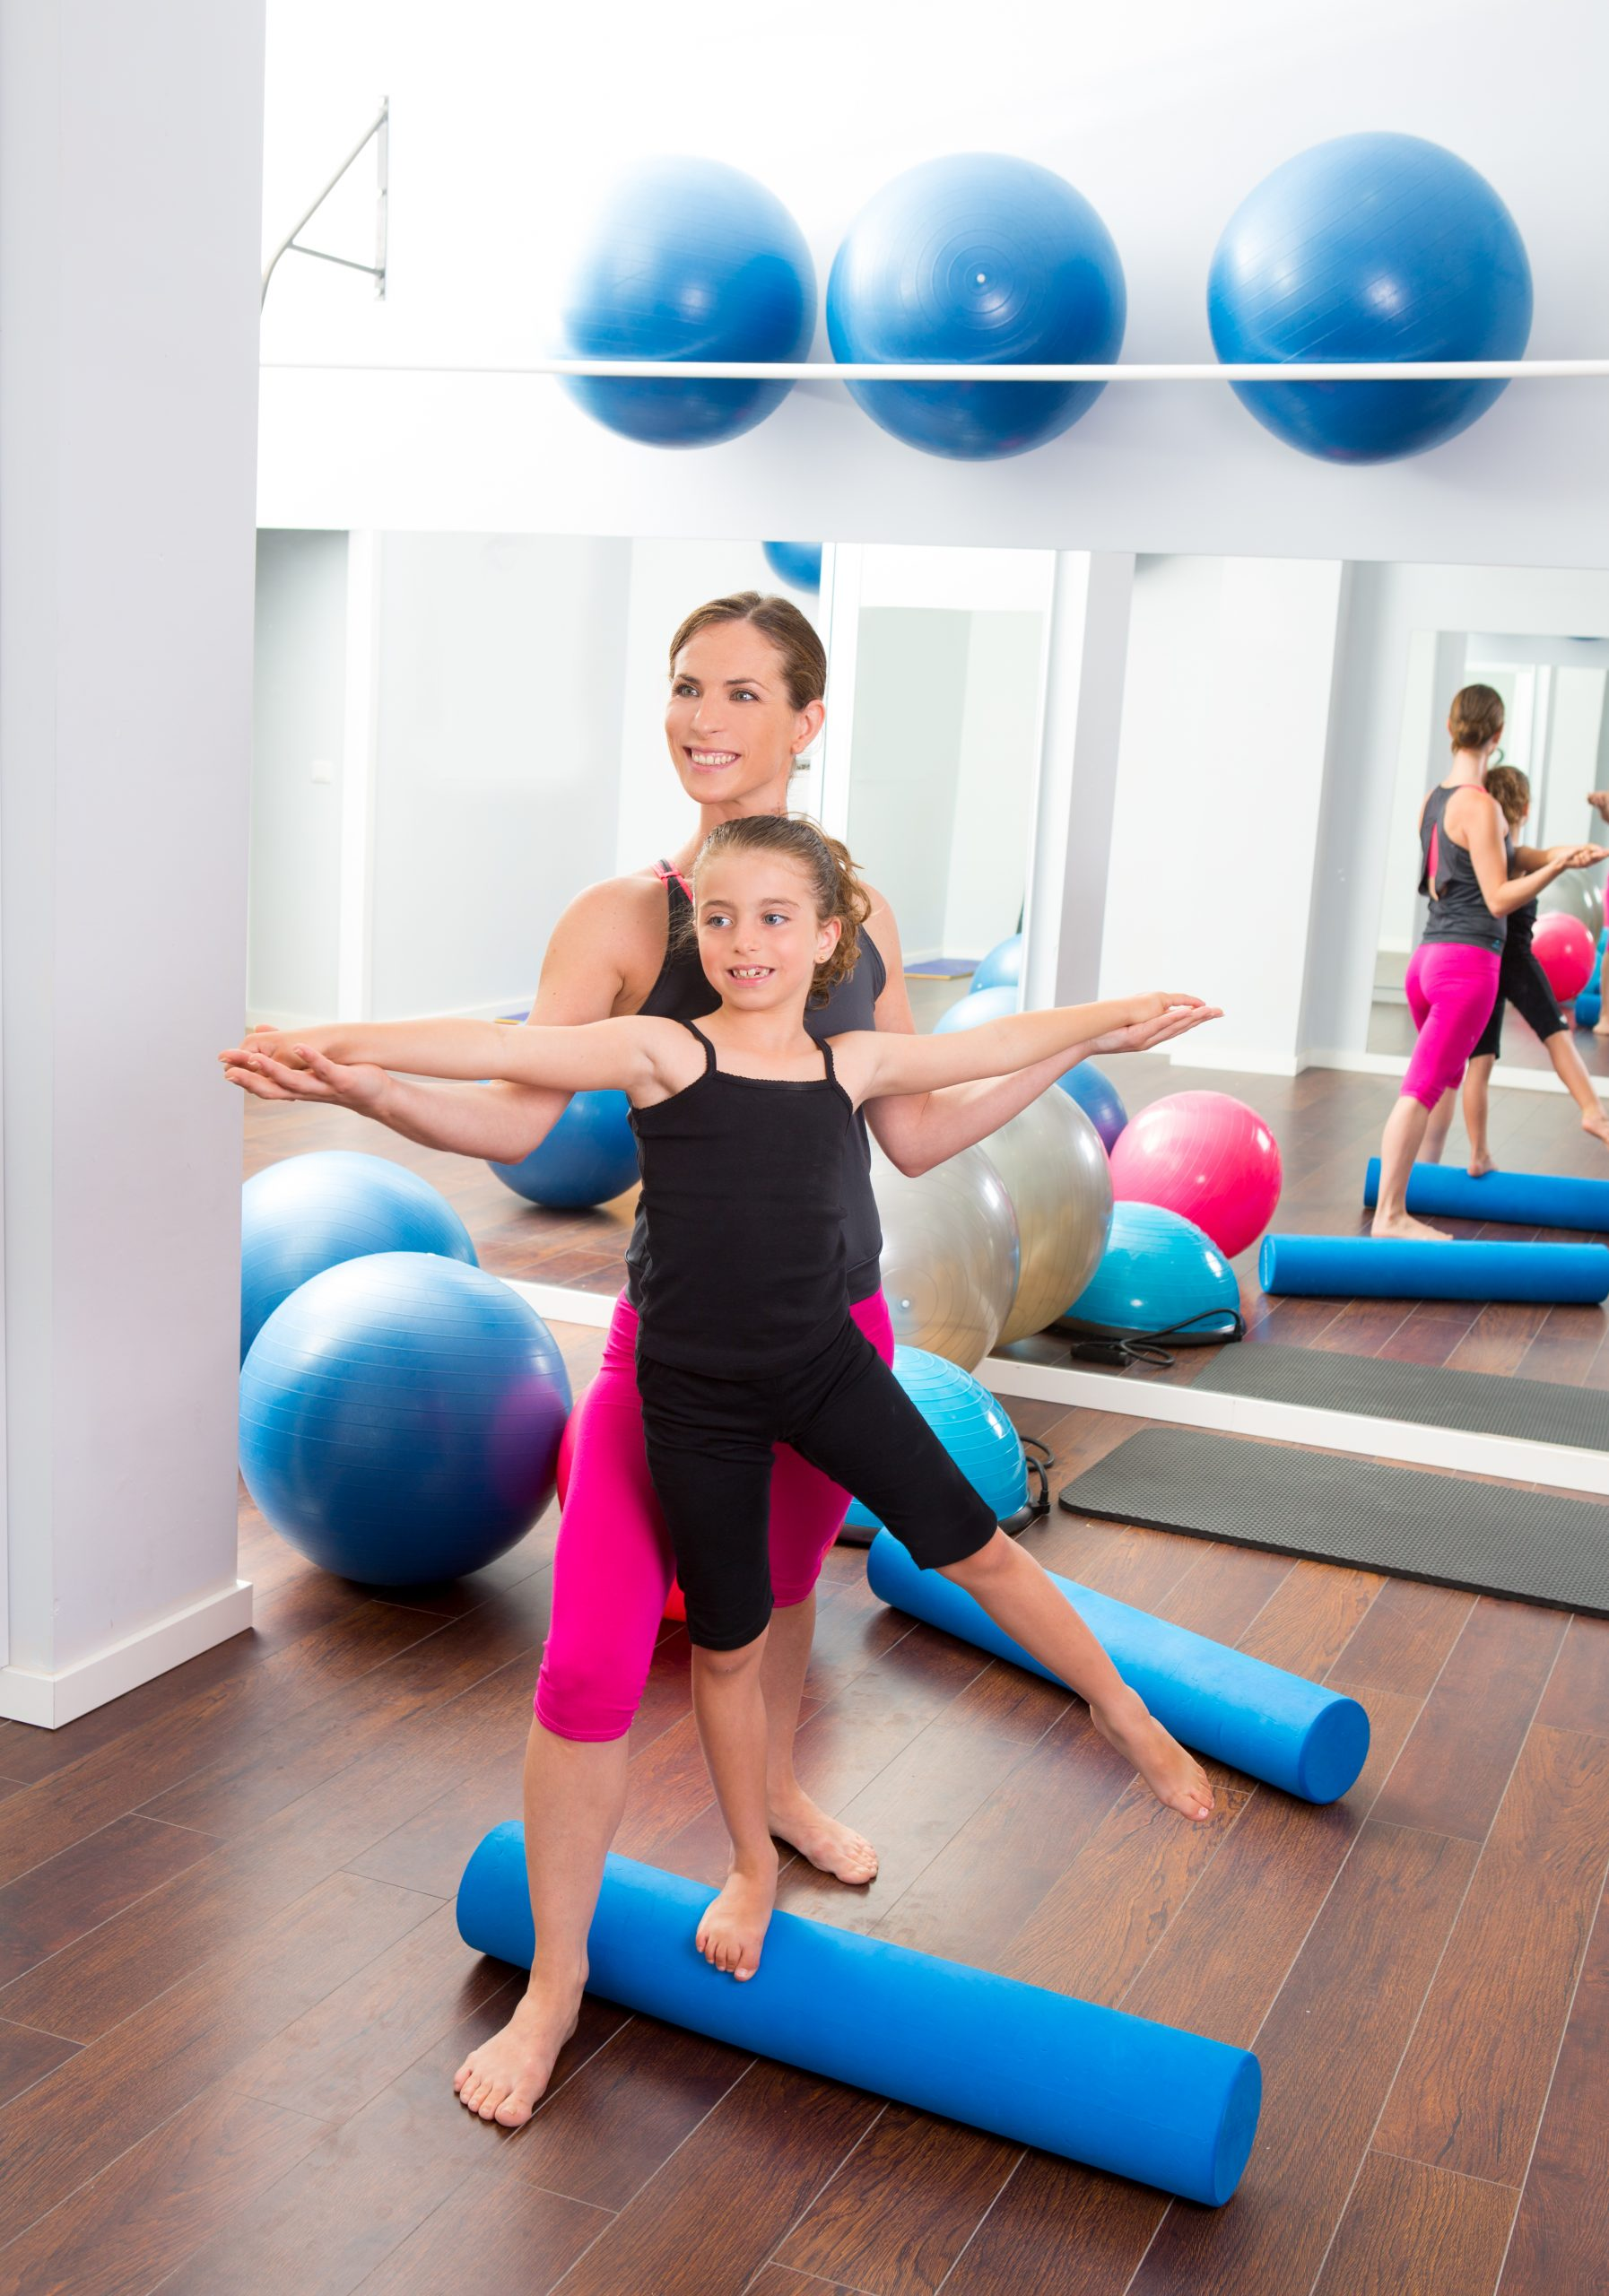 Aerobics,Woman,Personal,Trainer,Of,Children,Girl,Stability,With,Foam